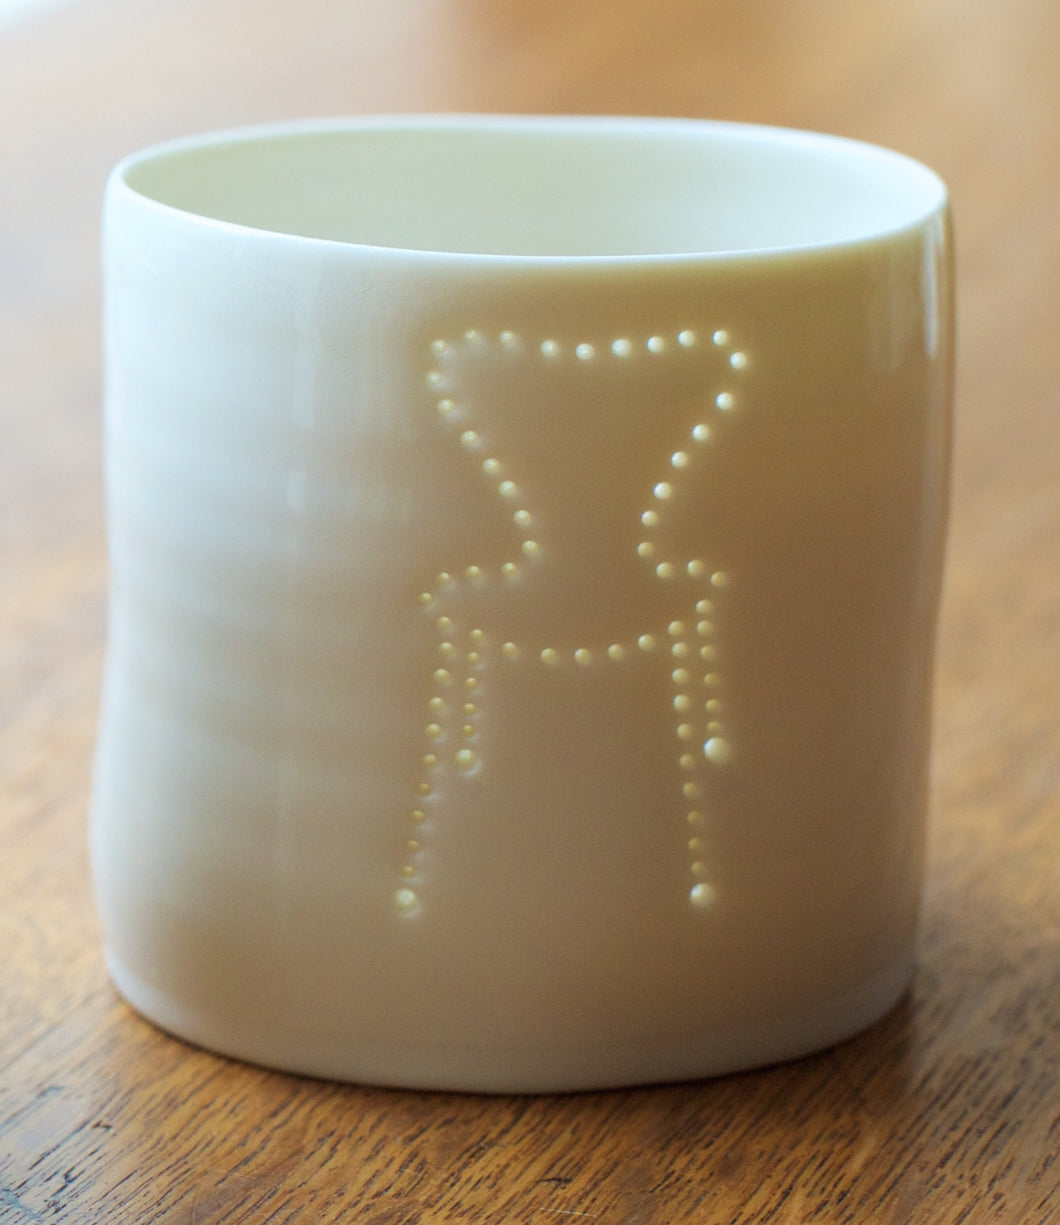 Arne Jacobsen Chair mini porcelain tealight holder